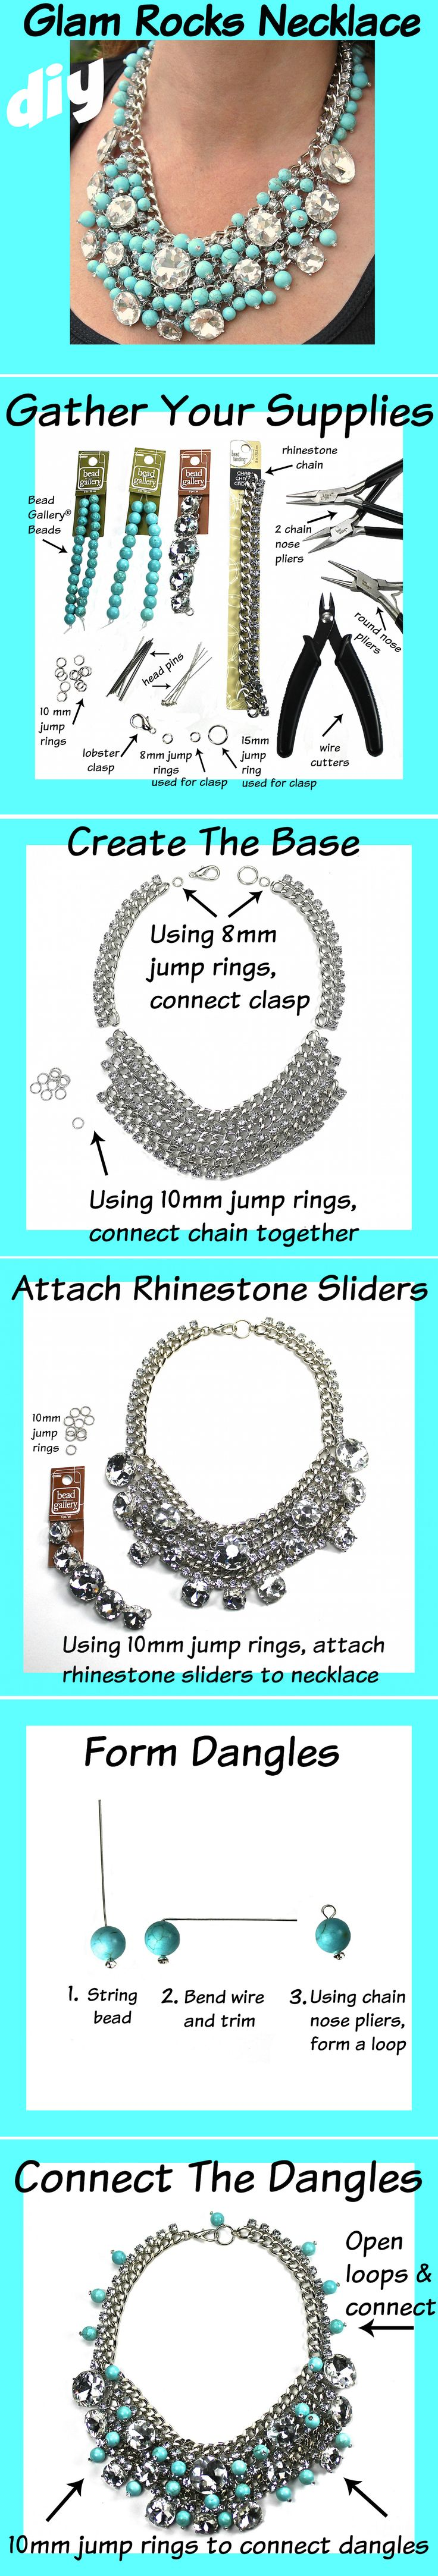 Create your own one-of-a-kind DIY Glam Rock Necklace with these easy steps